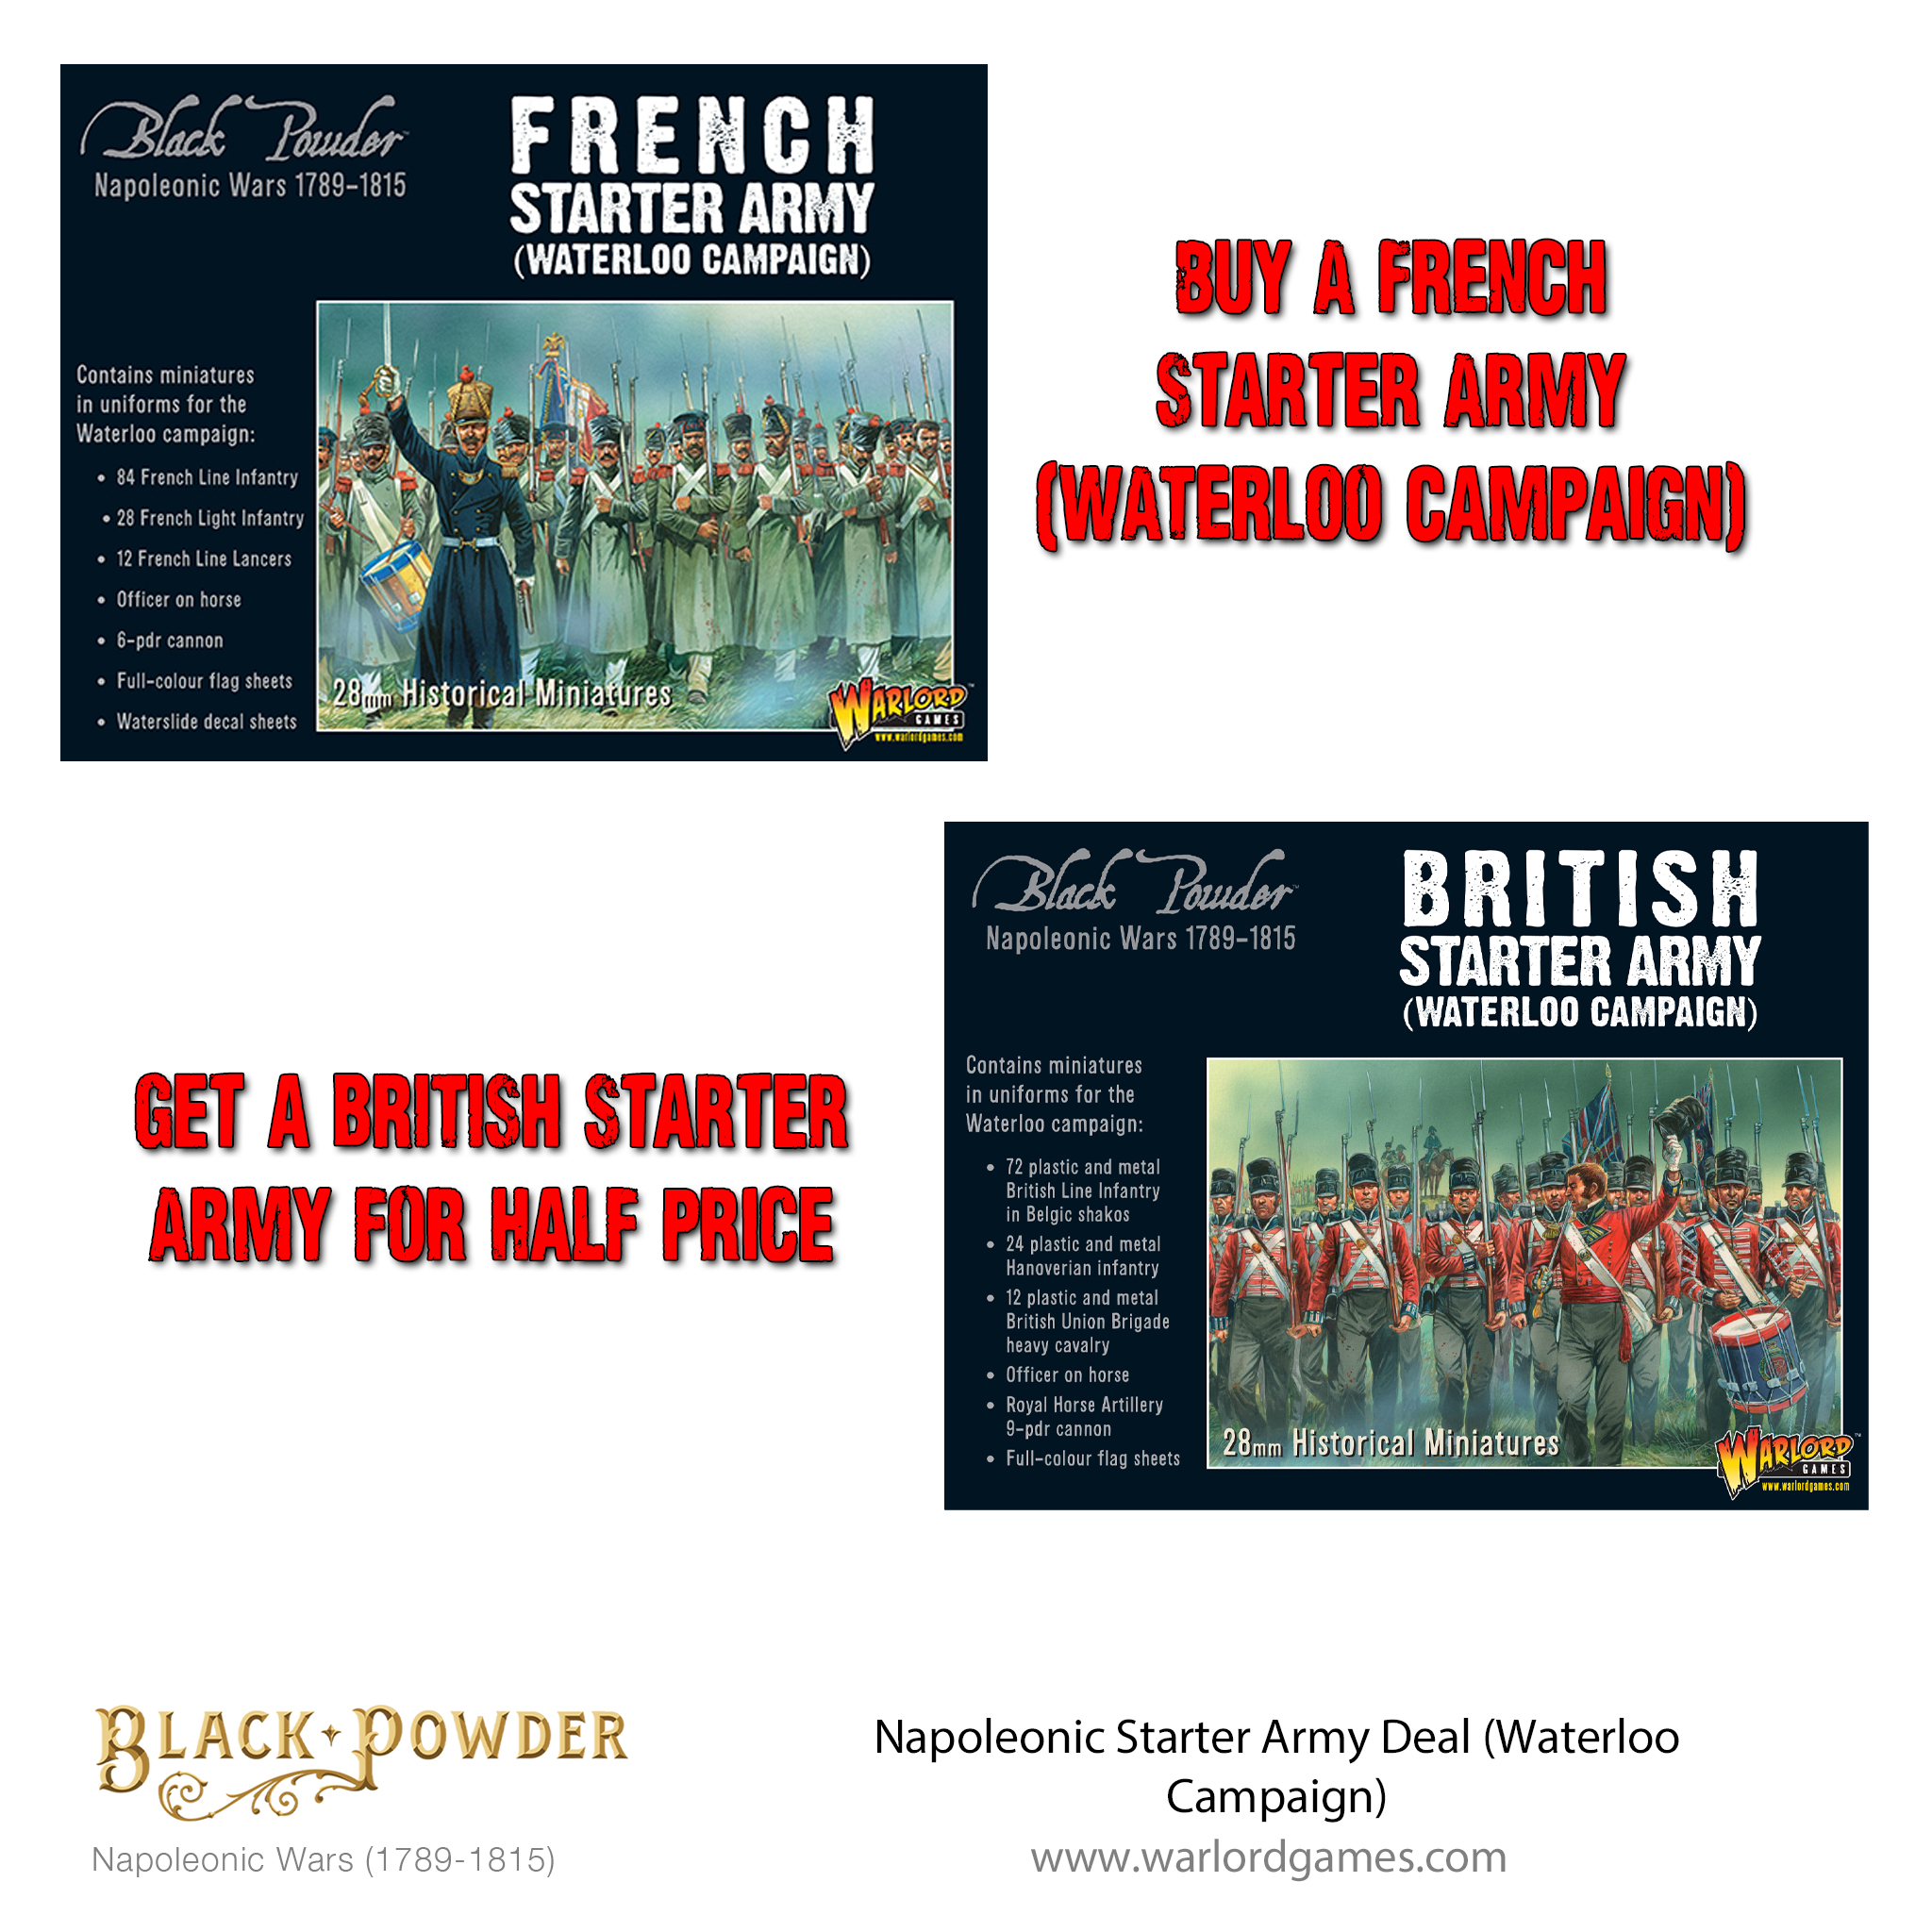 Napoleonic Starter Army Deal (Waterloo Campaign)